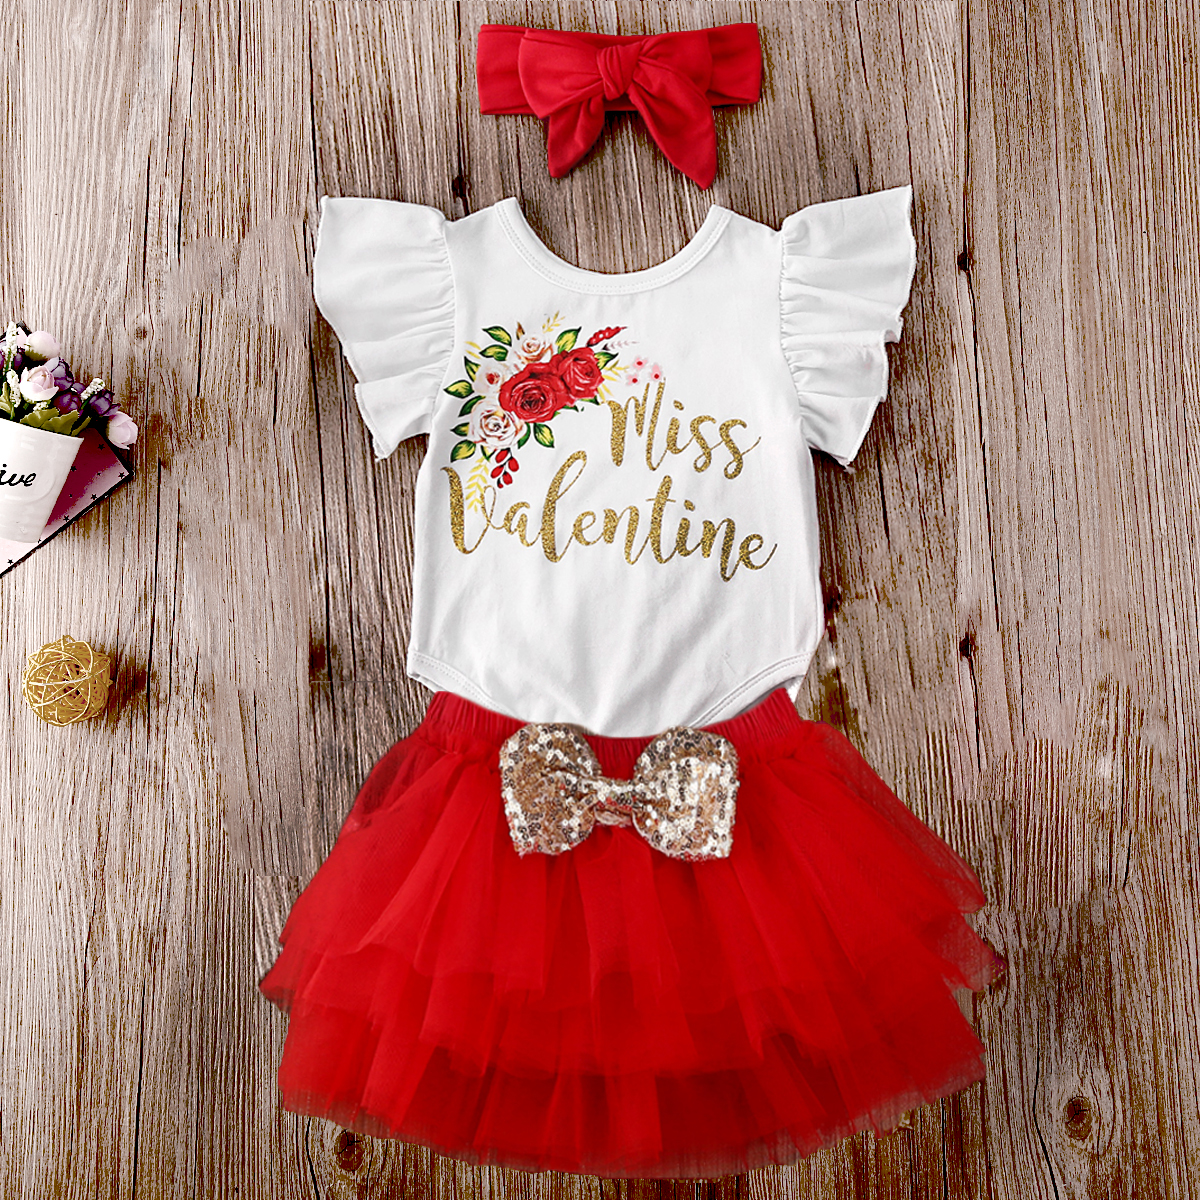 Infant Baby Girls Long Sleeve Solid Color Ruched Floral Flower Bow Skirt Clothes